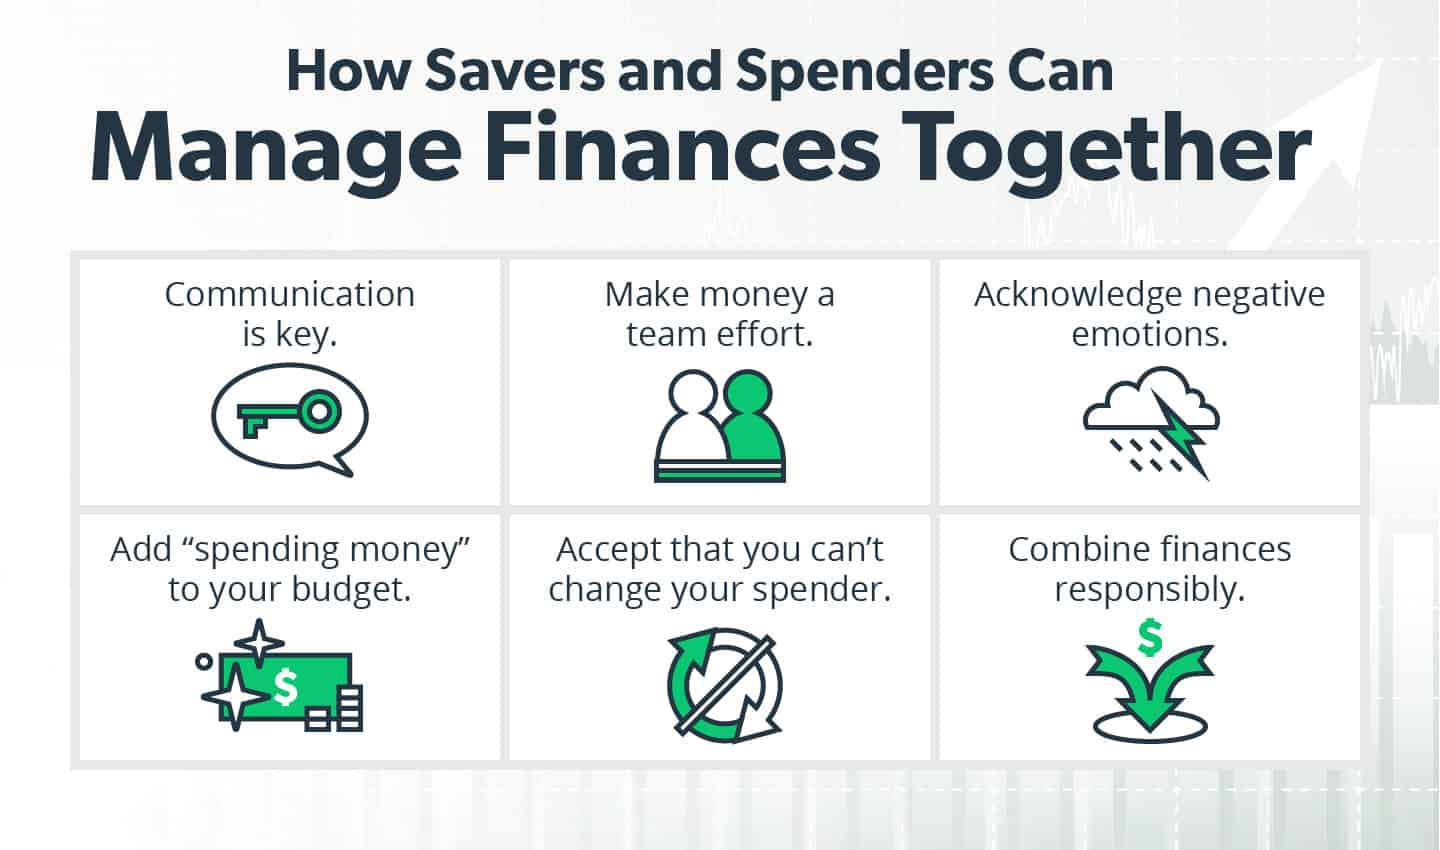 How spenders and savers can manage finances together